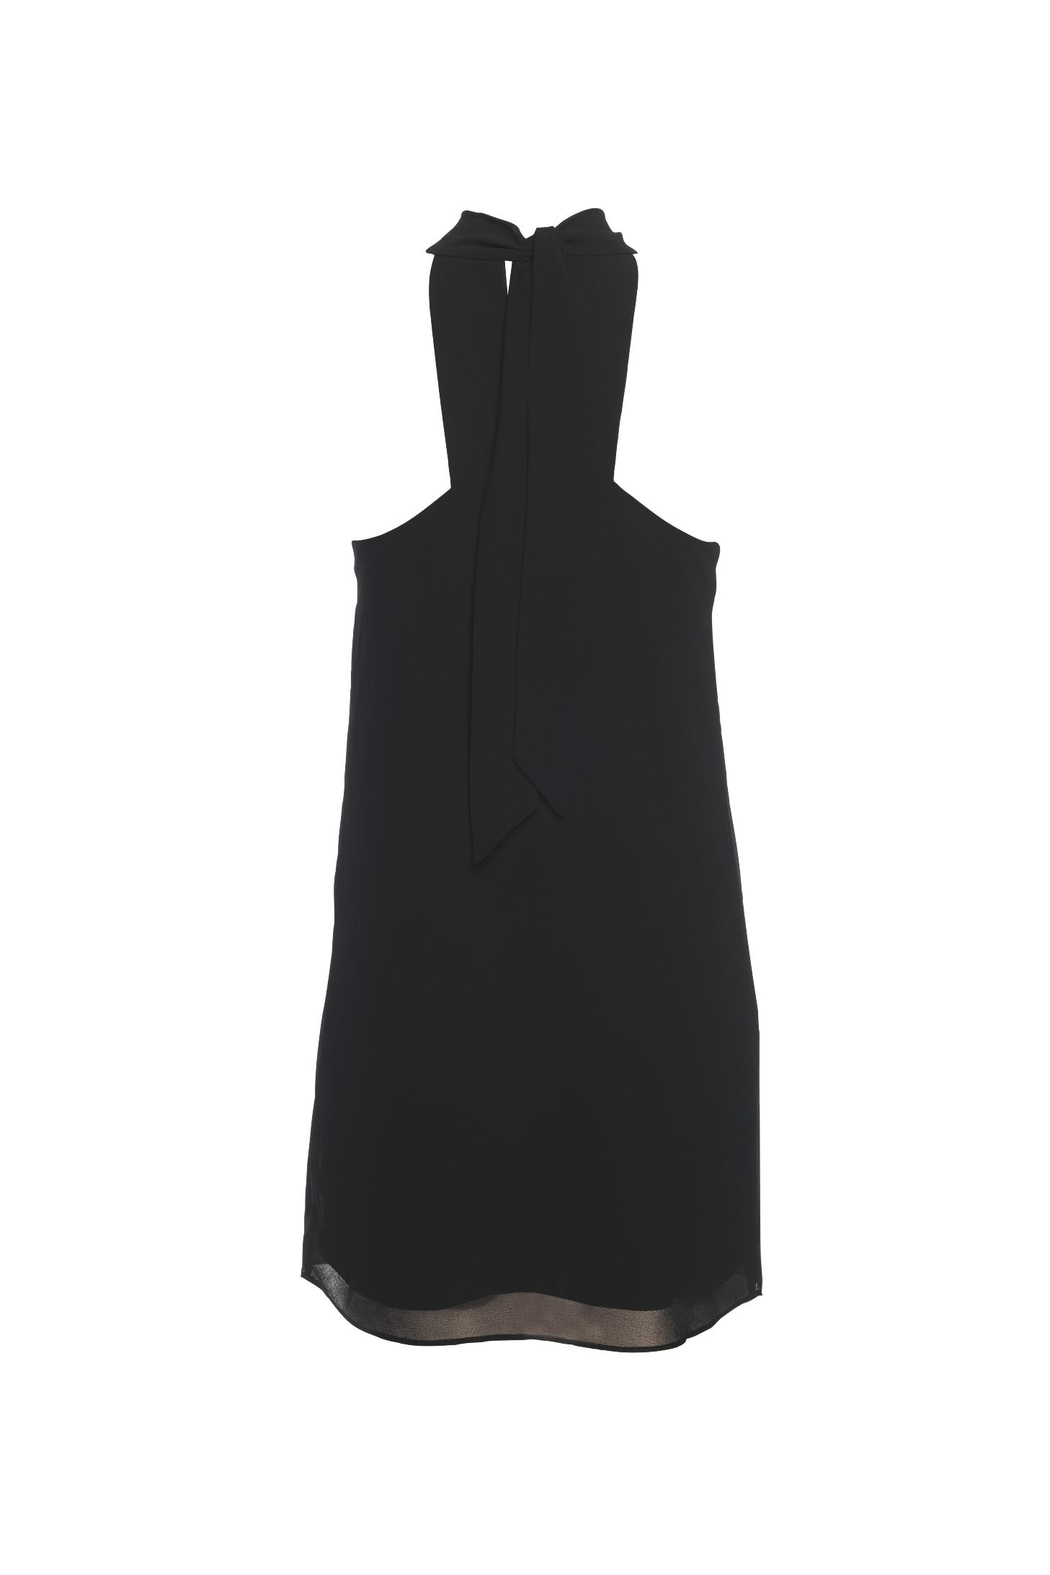 Lost April Kate Keyhole Dress - Front Full Image